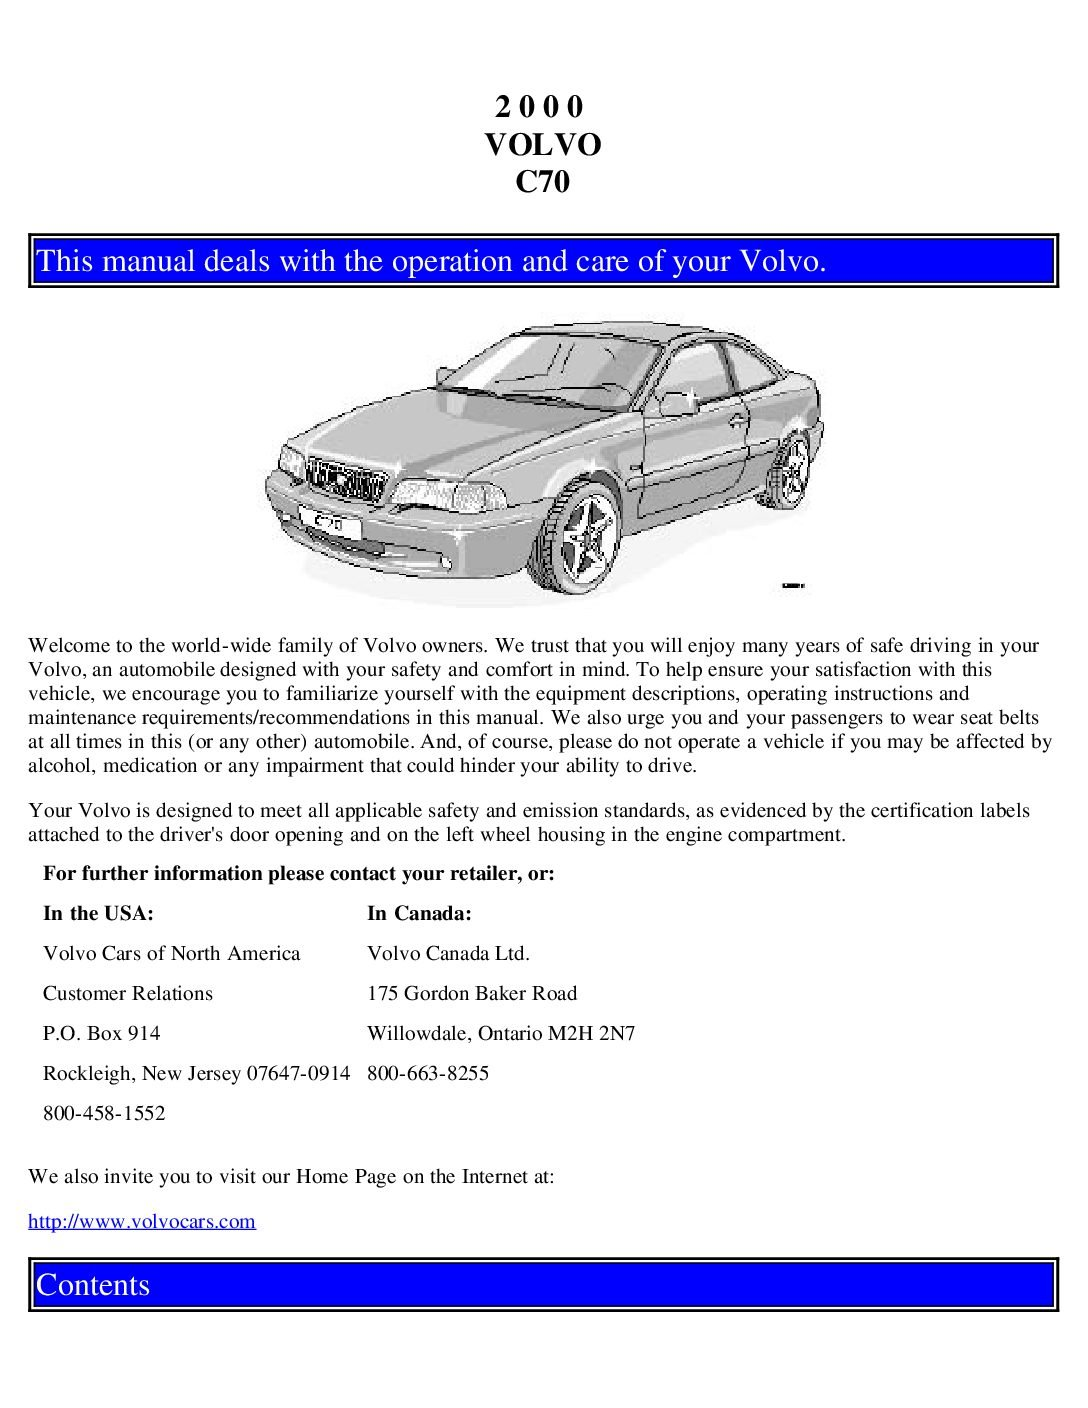 2000 volvo c70 owners manual just give me the damn manual 2000 volvo c70 owners manual solutioingenieria Images